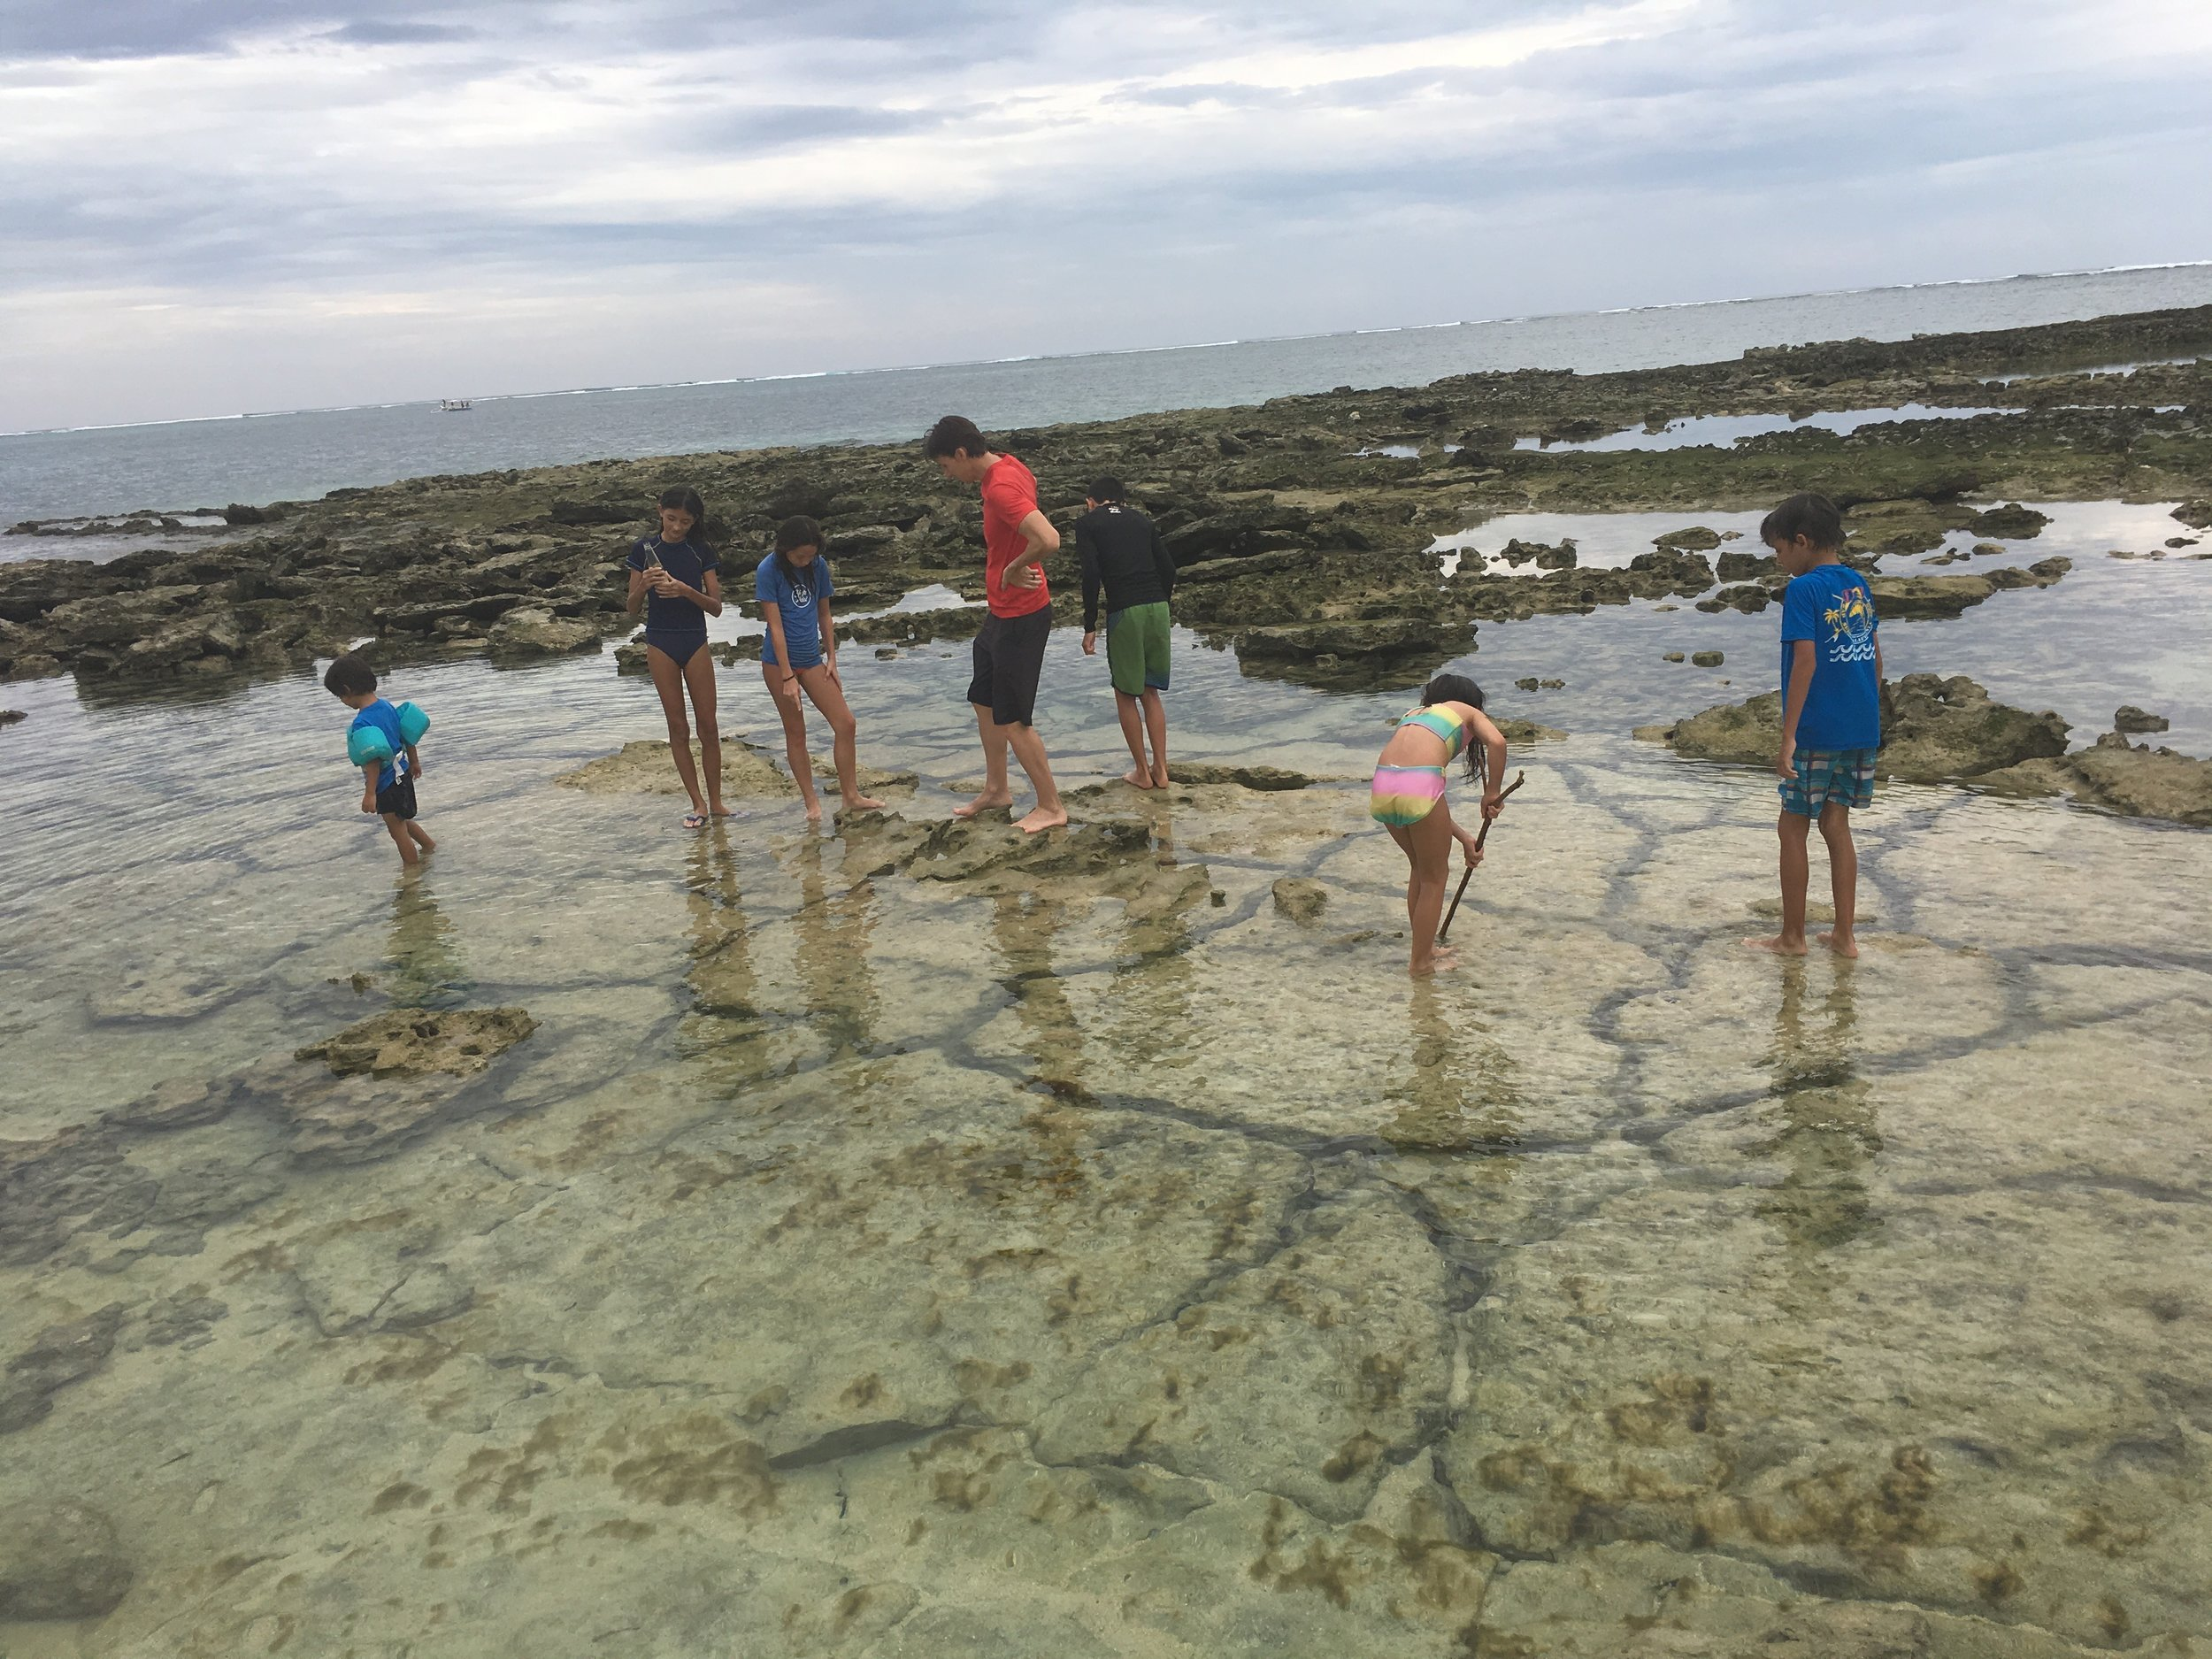 Exploring tidal pools at Guyam Island